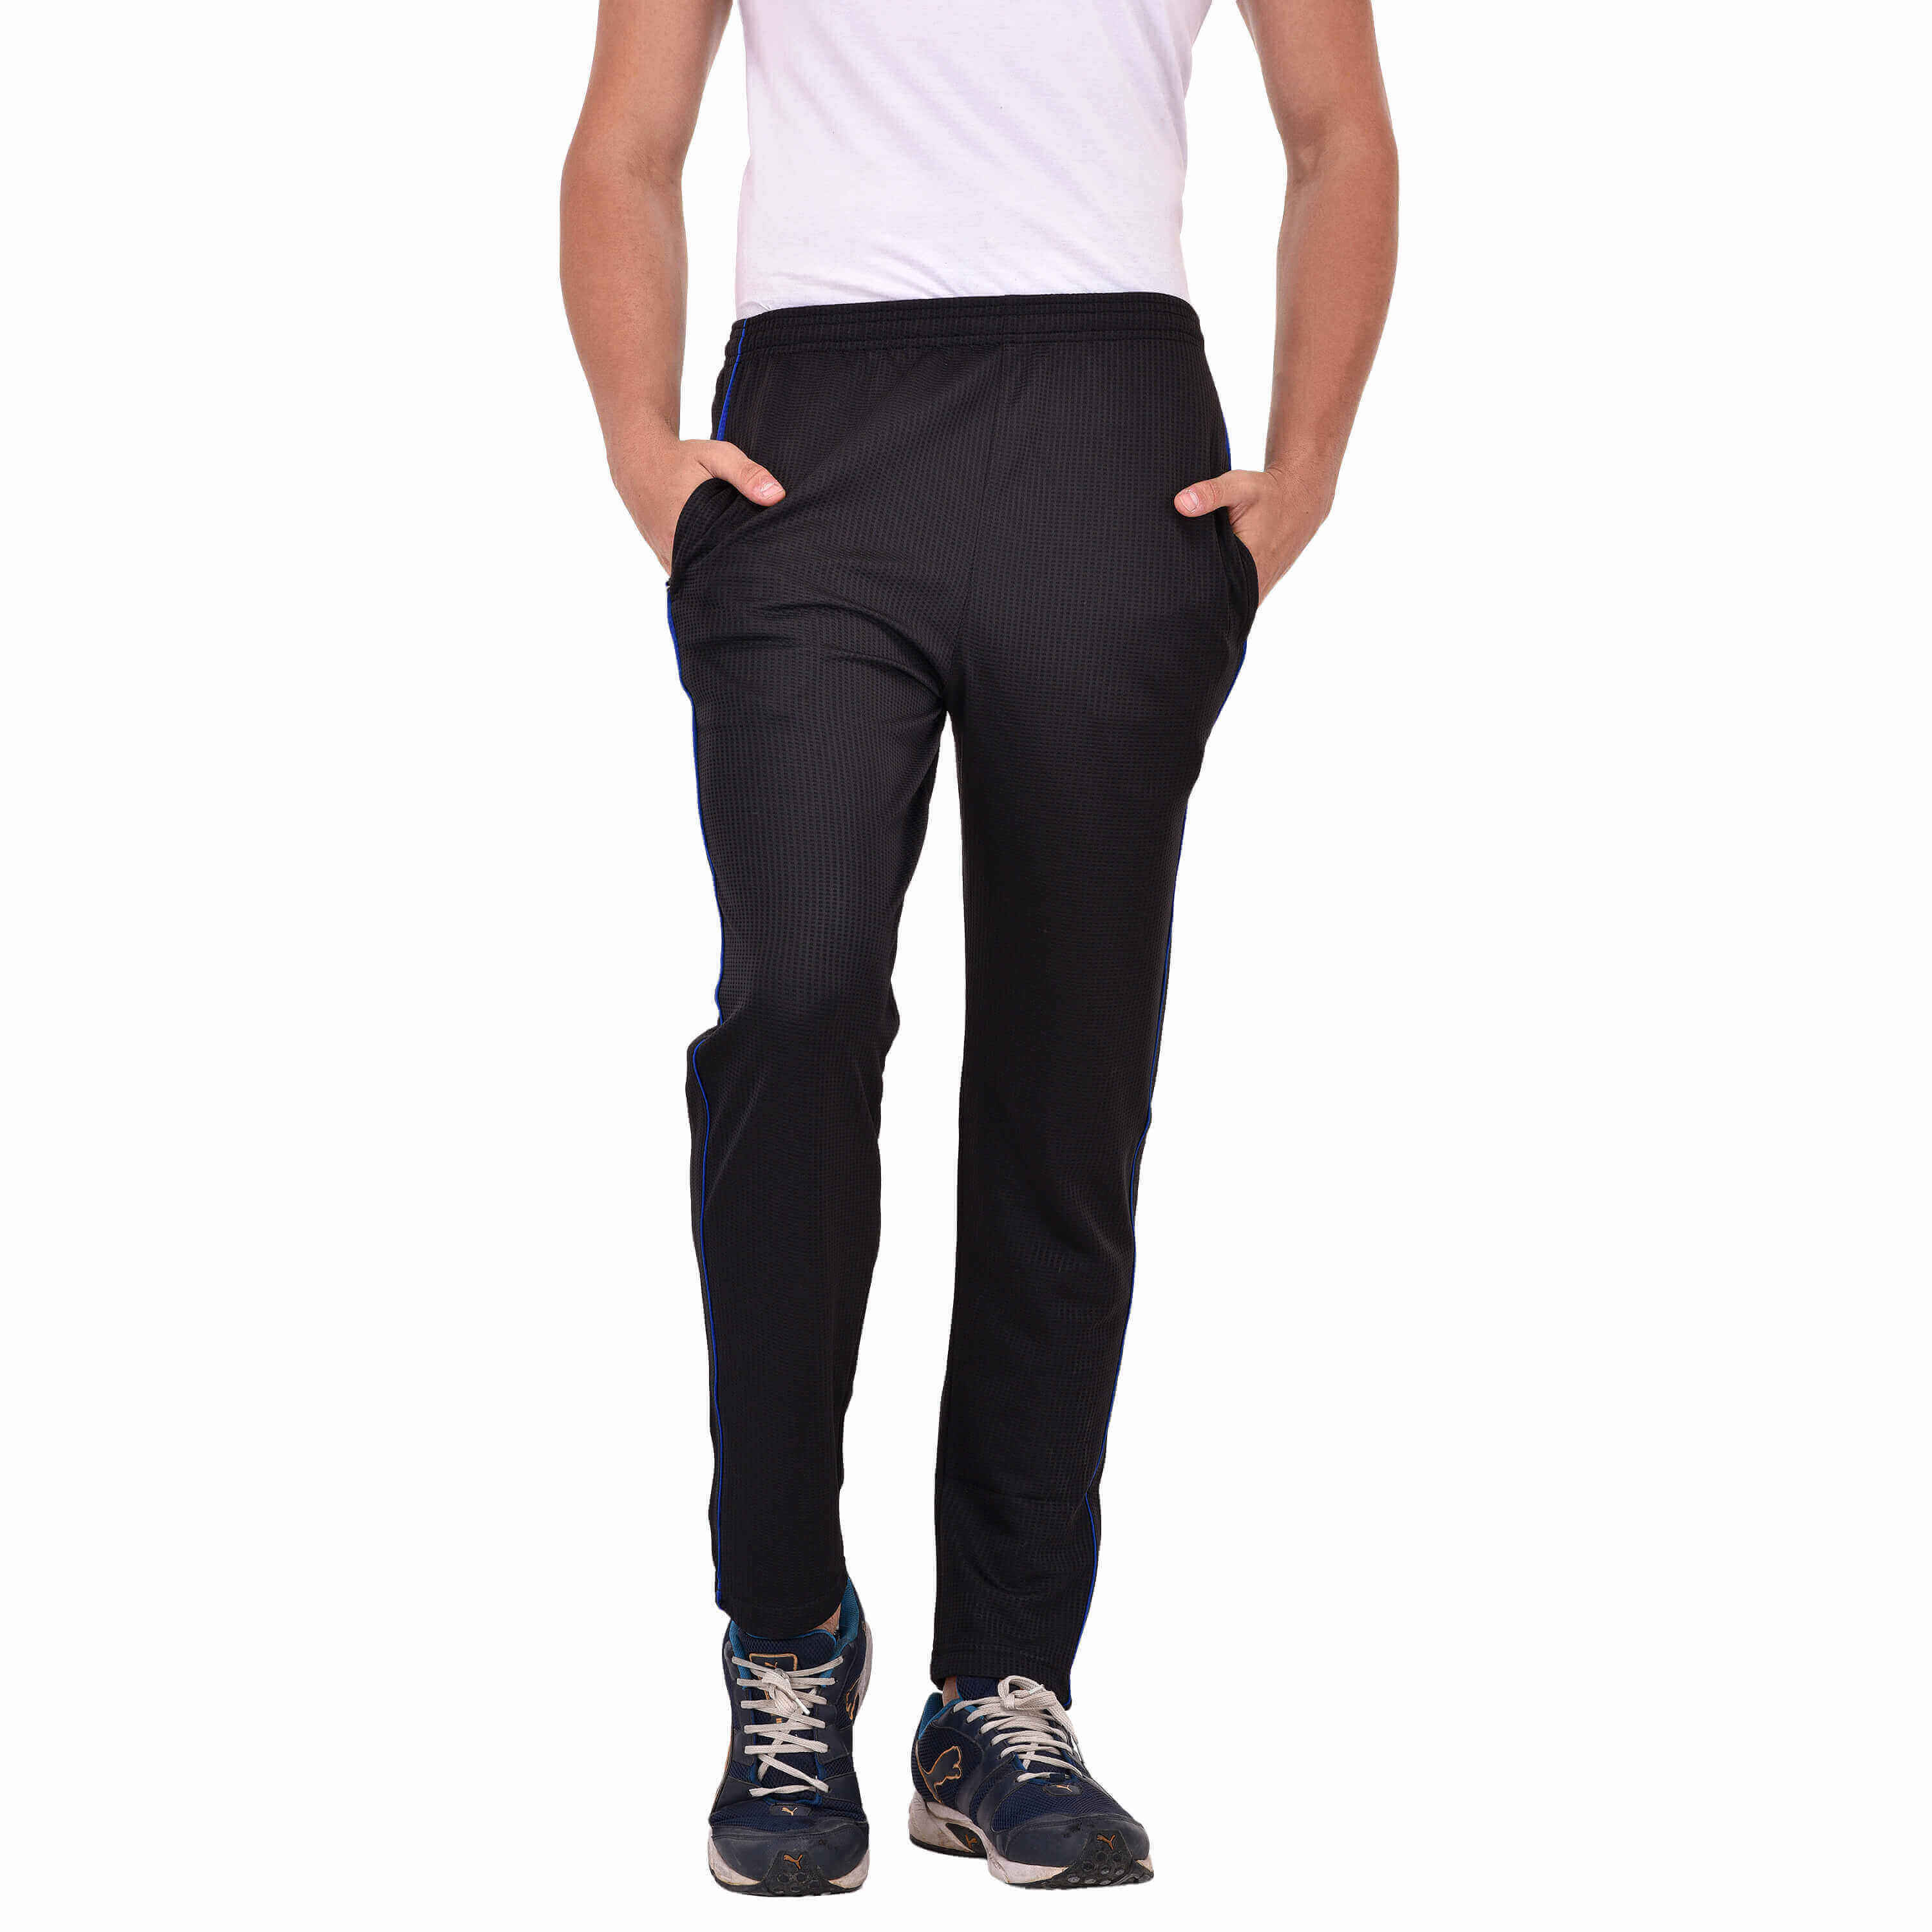 Mens Tracksuit Bottoms Manufacturers in Thailand